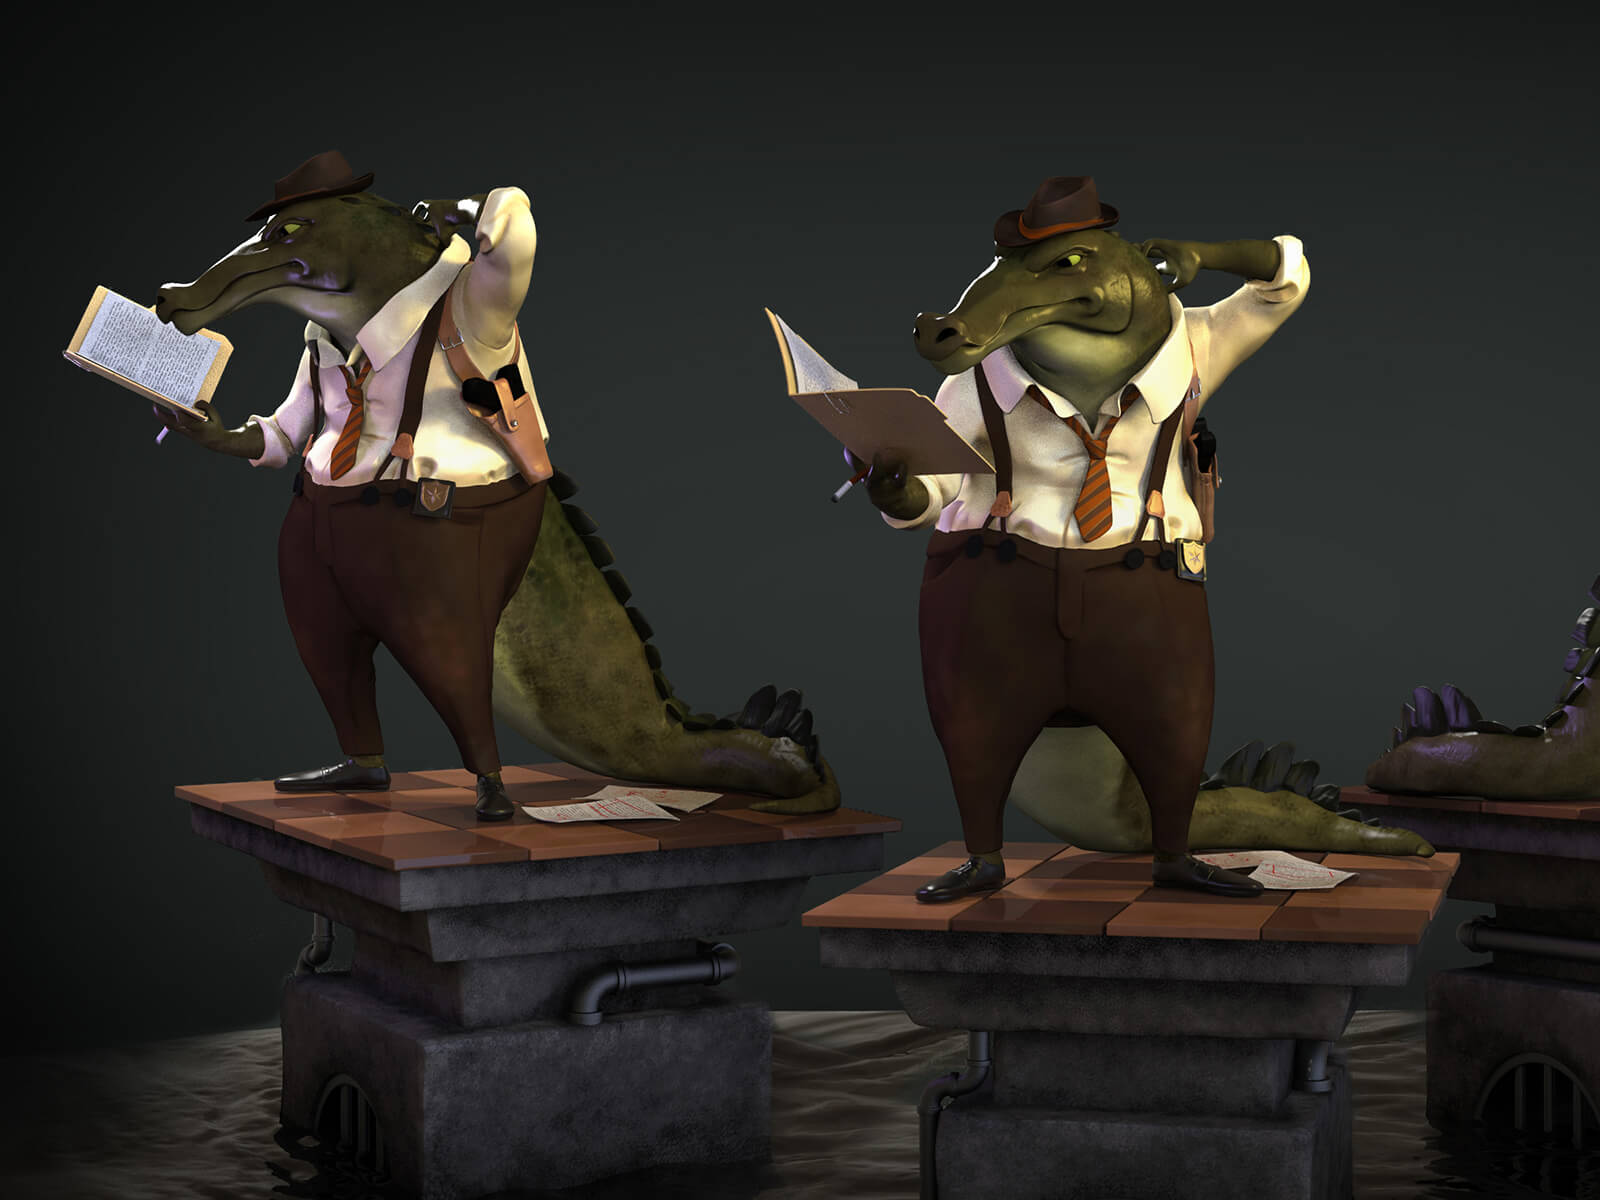 Two angles of an alligator dressed in pants, shirt, and tie